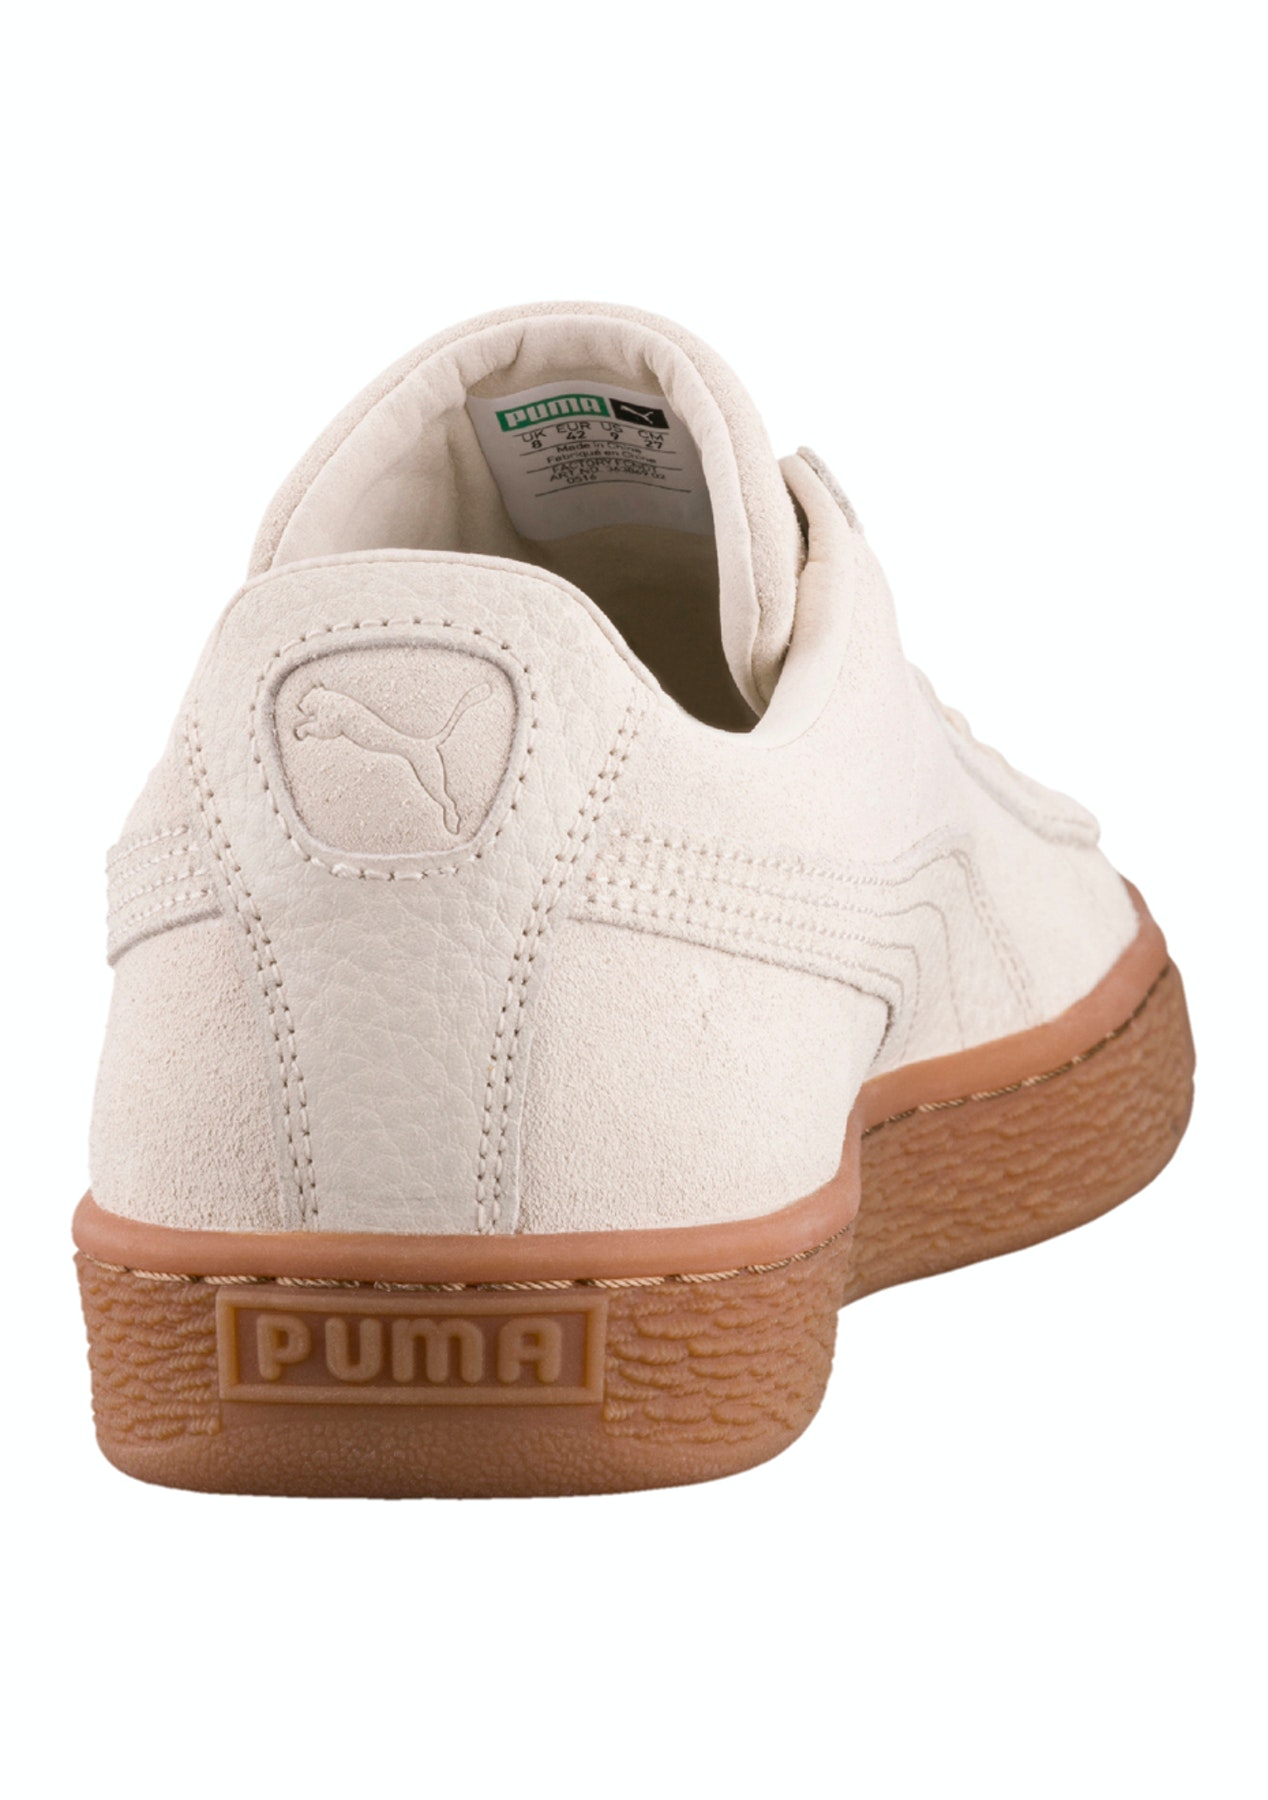 sports shoes df947 22dfd Puma Mens - Suede Classic - Natural Warmth